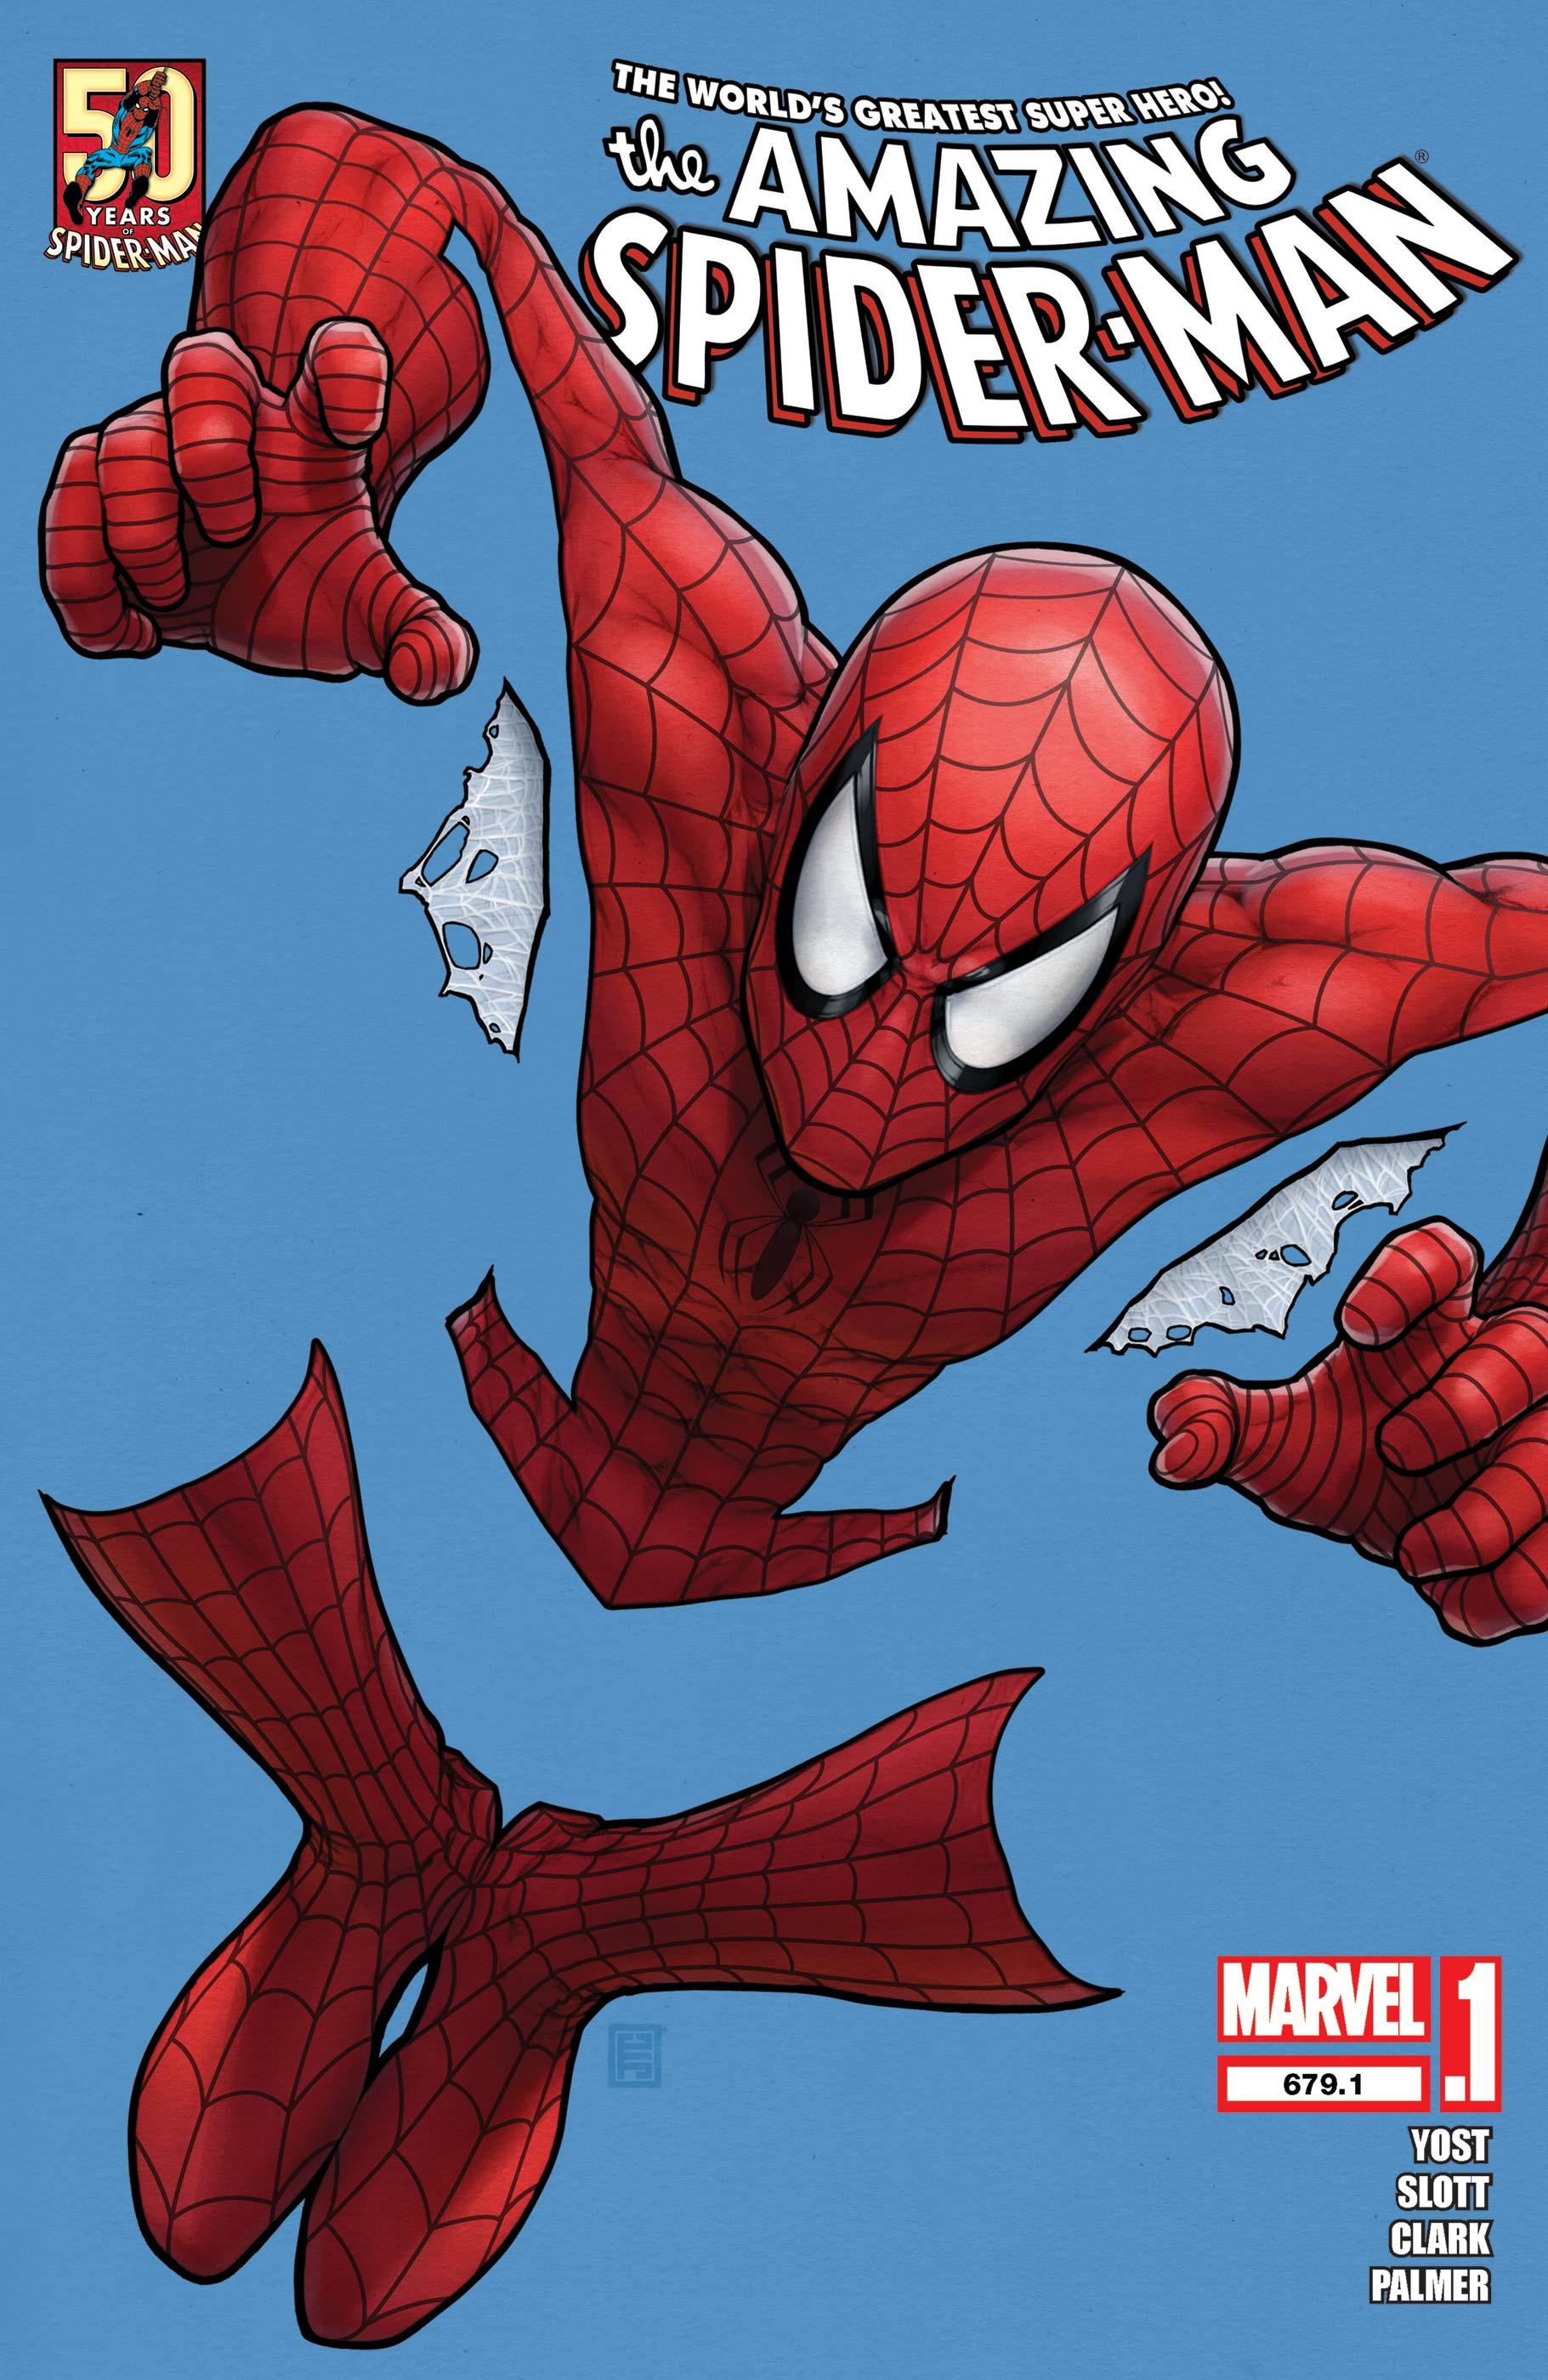 Amazing Spider-Man (1999) #679.1